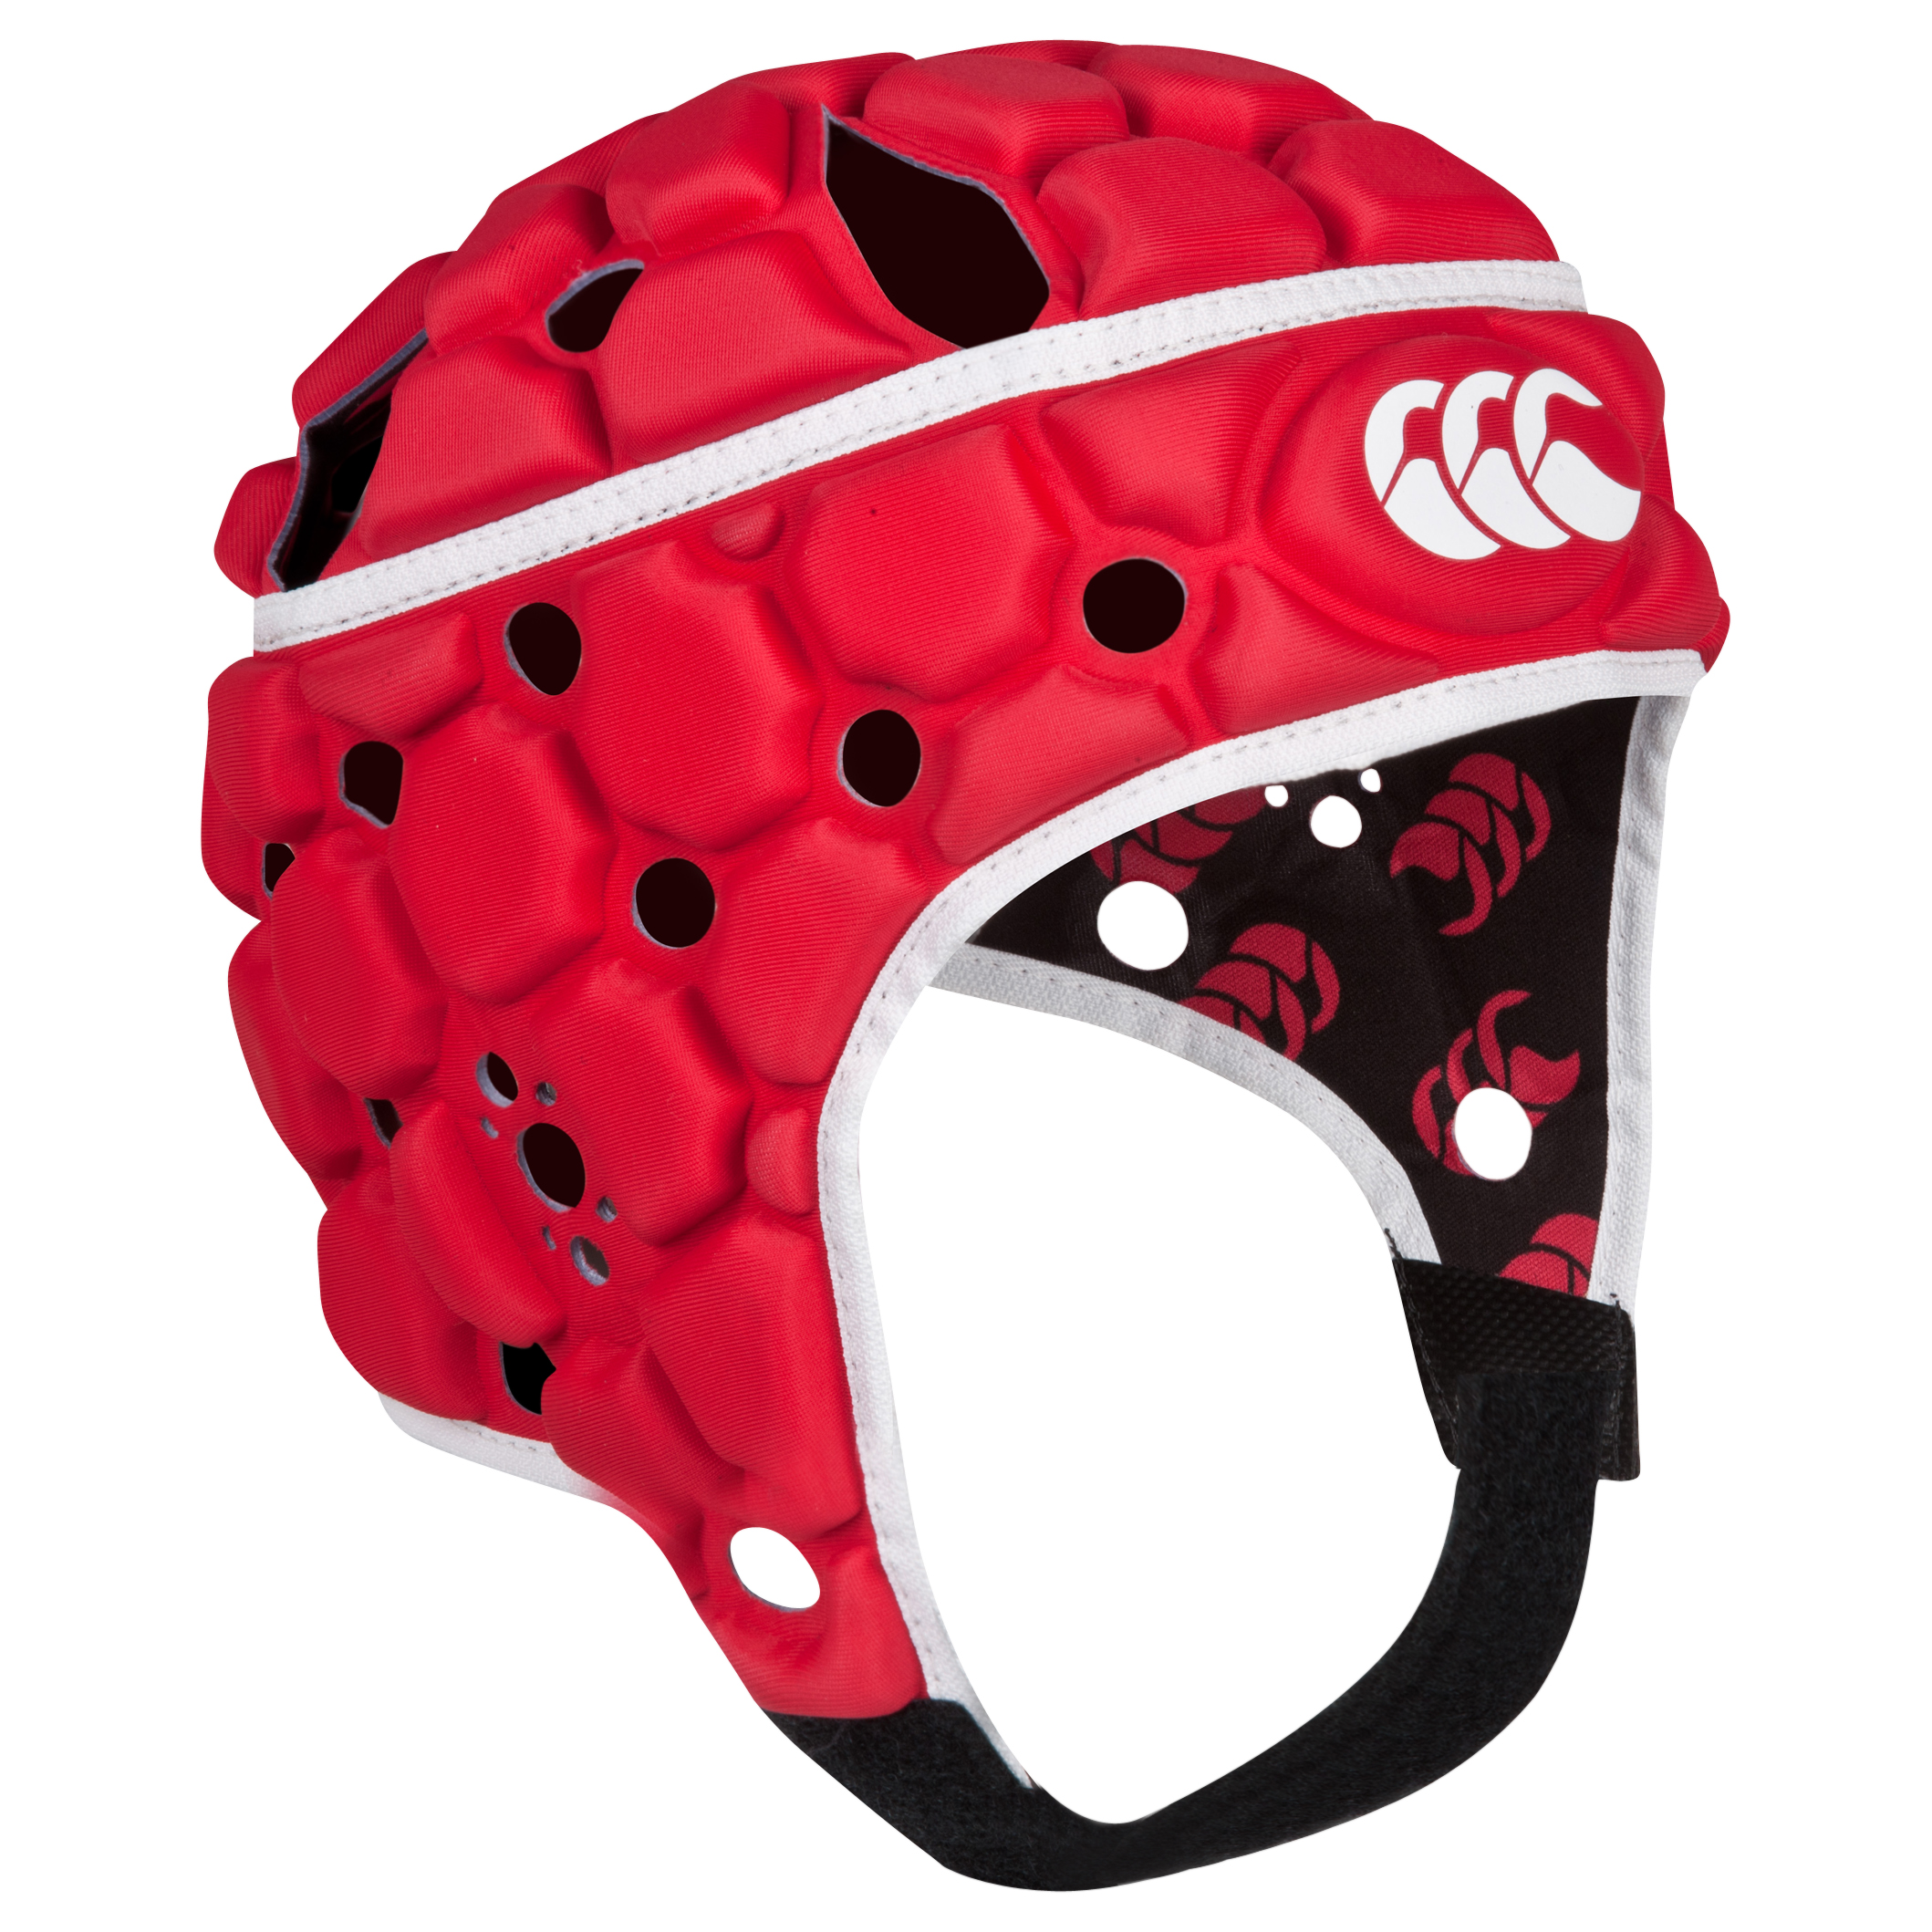 Canterbury Ventilator Headguard - Flag Red - Kids